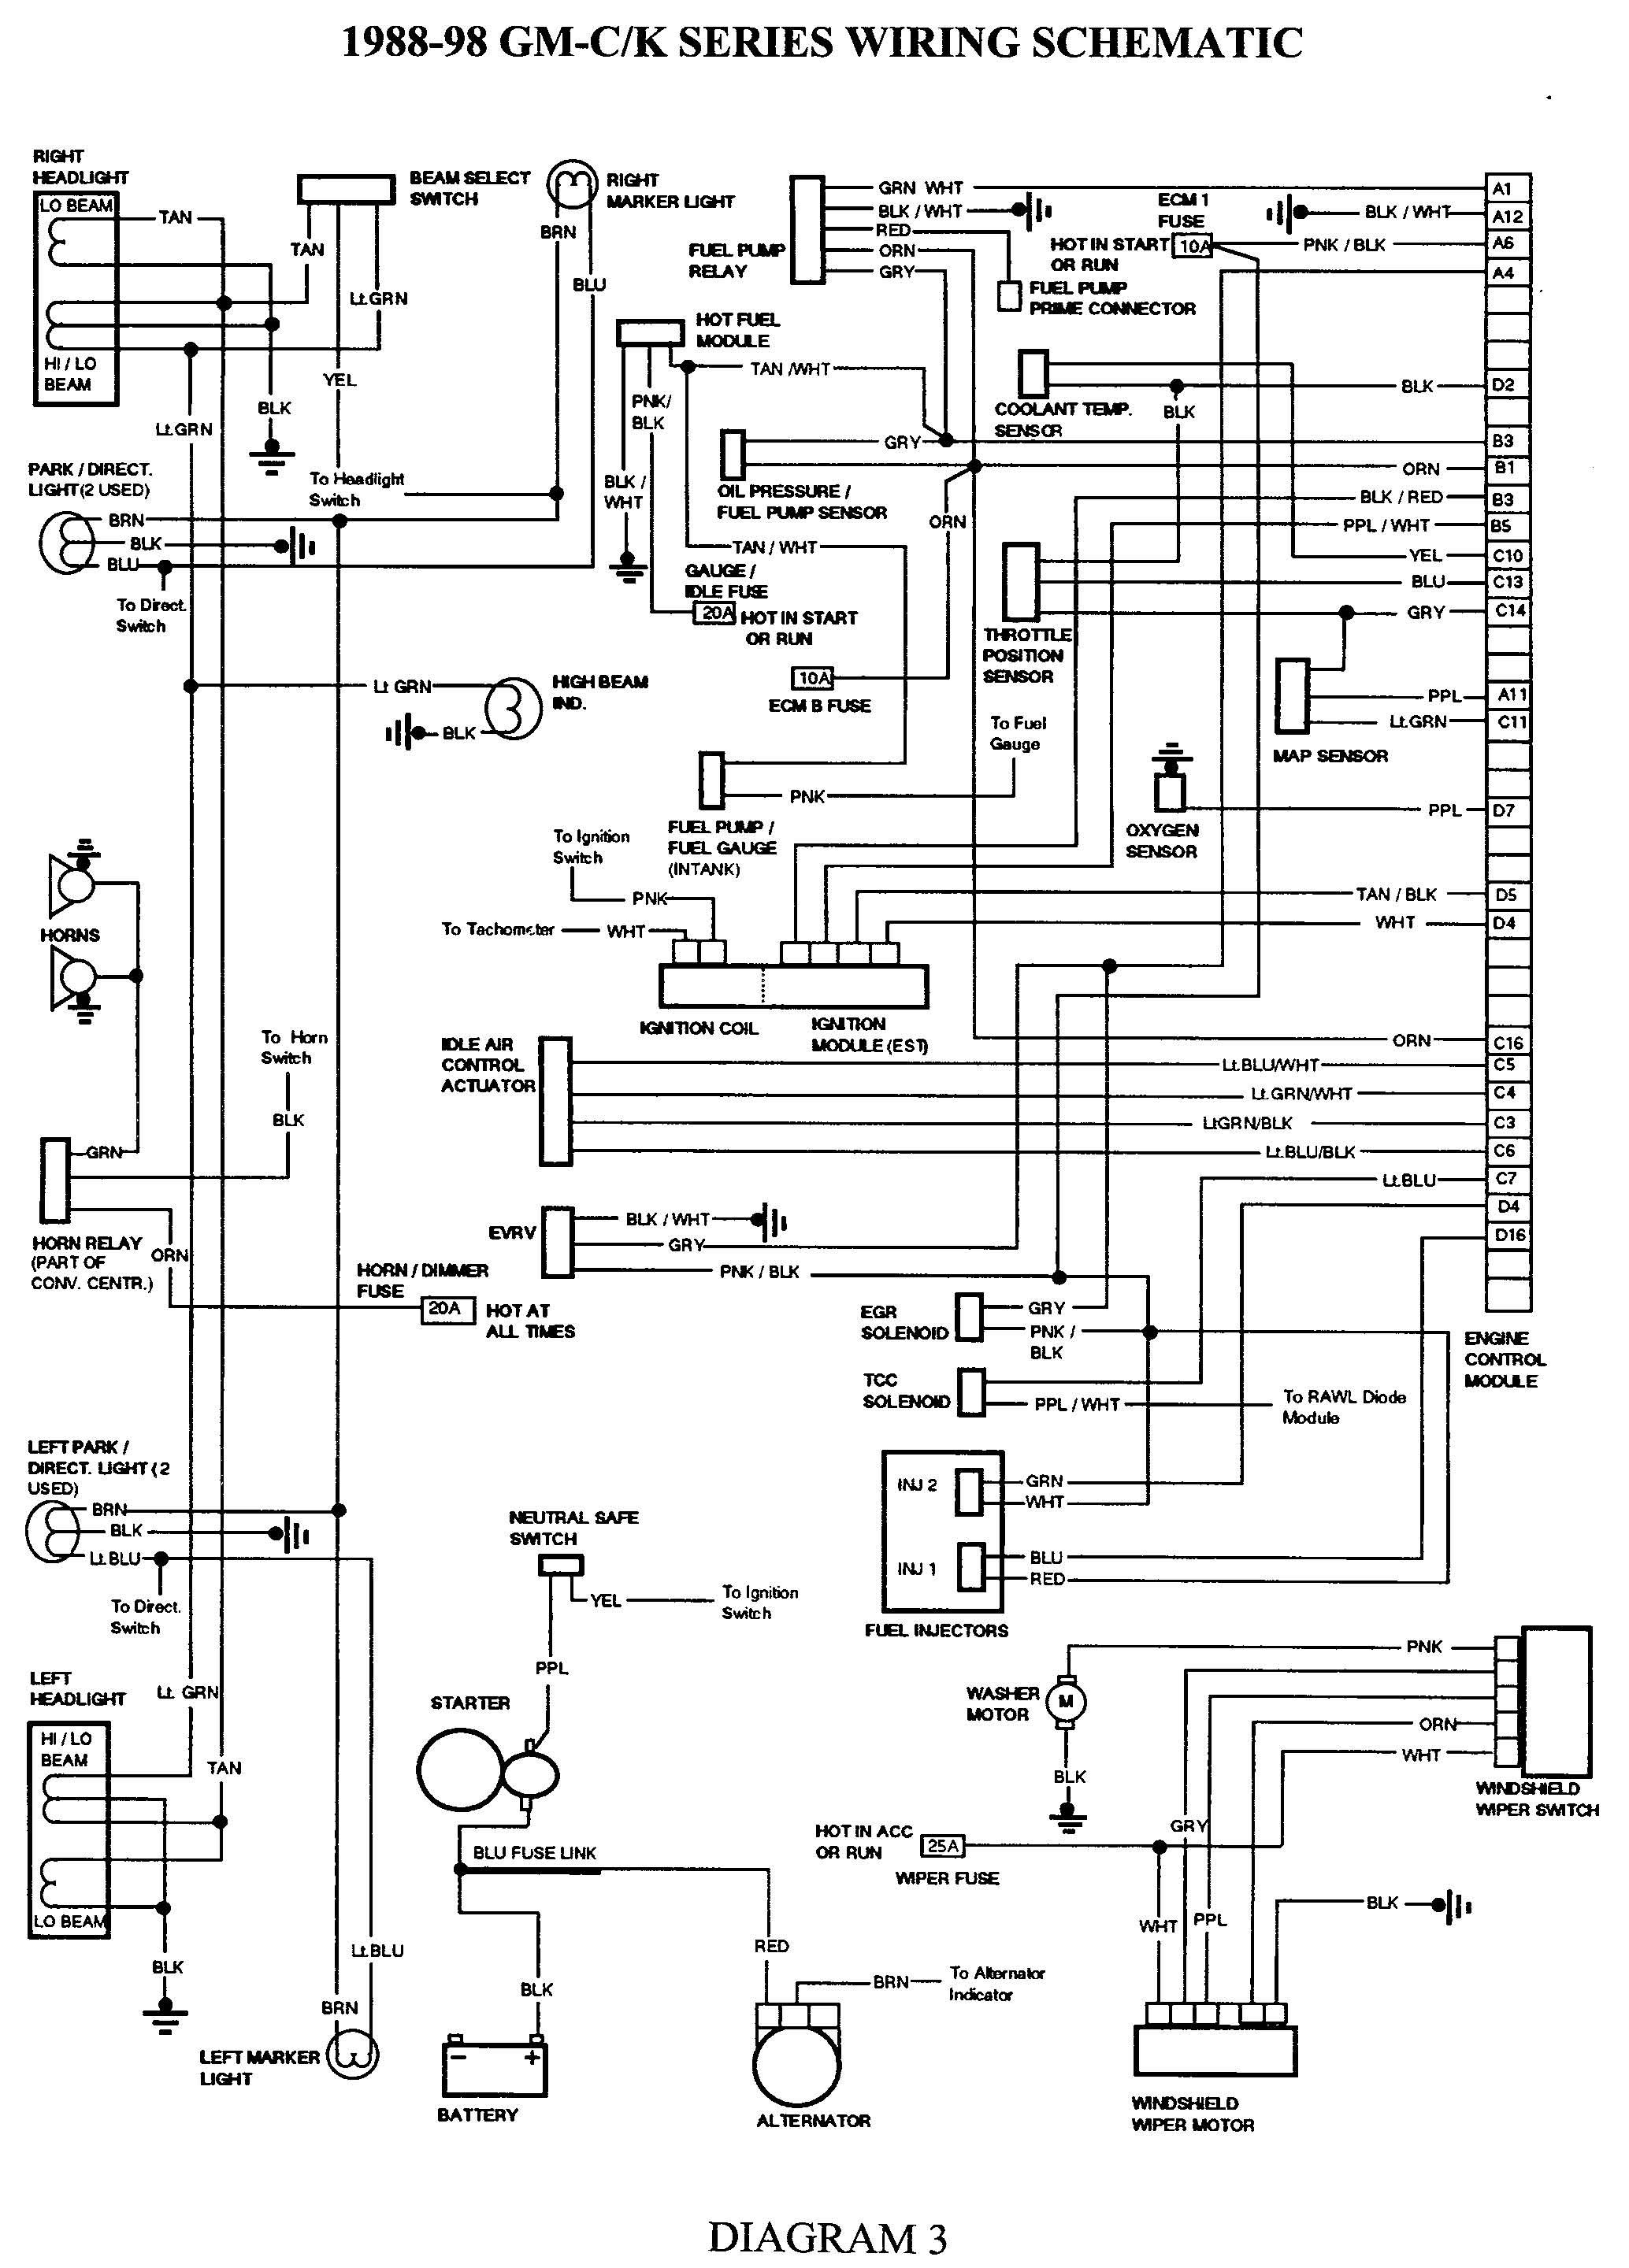 chevrolet wiring diagrams wiring diagram schemes van hool cx45 gmc truck wiring diagrams on gm wiring [ 2068 x 2880 Pixel ]